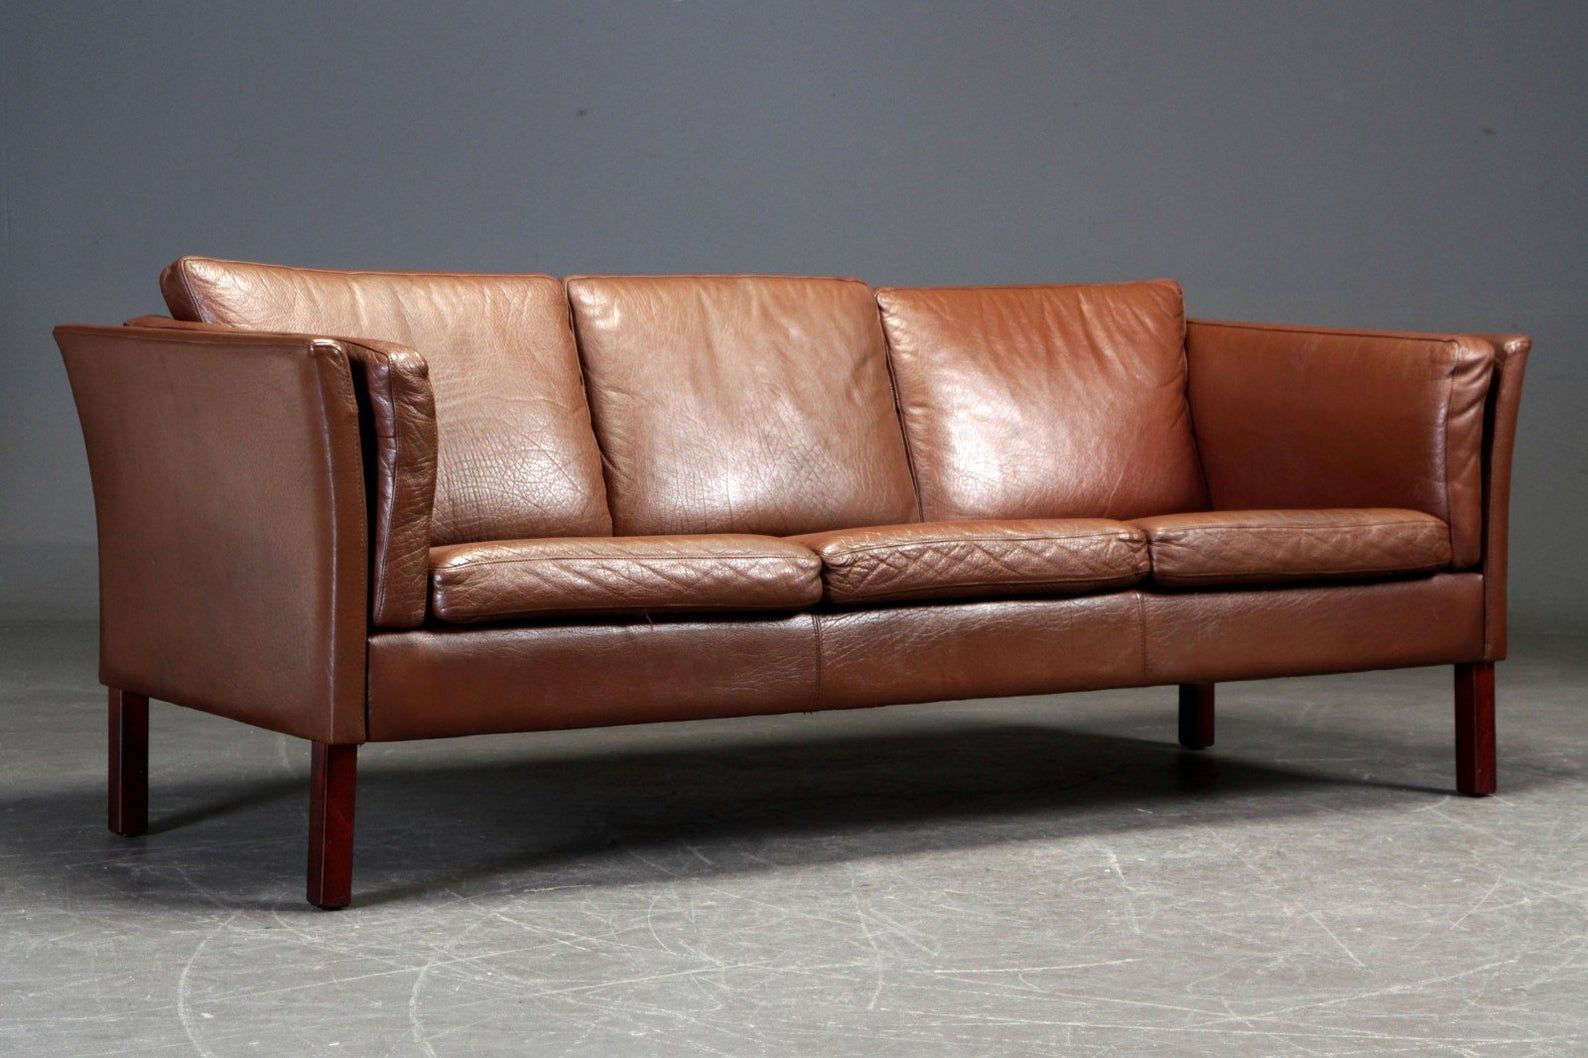 Great 3 Seater Vintage Leather Sofa Danish Mid Century Etsy In 2020 Vintage Leather Sofa Leather Sofa Vintage Leather